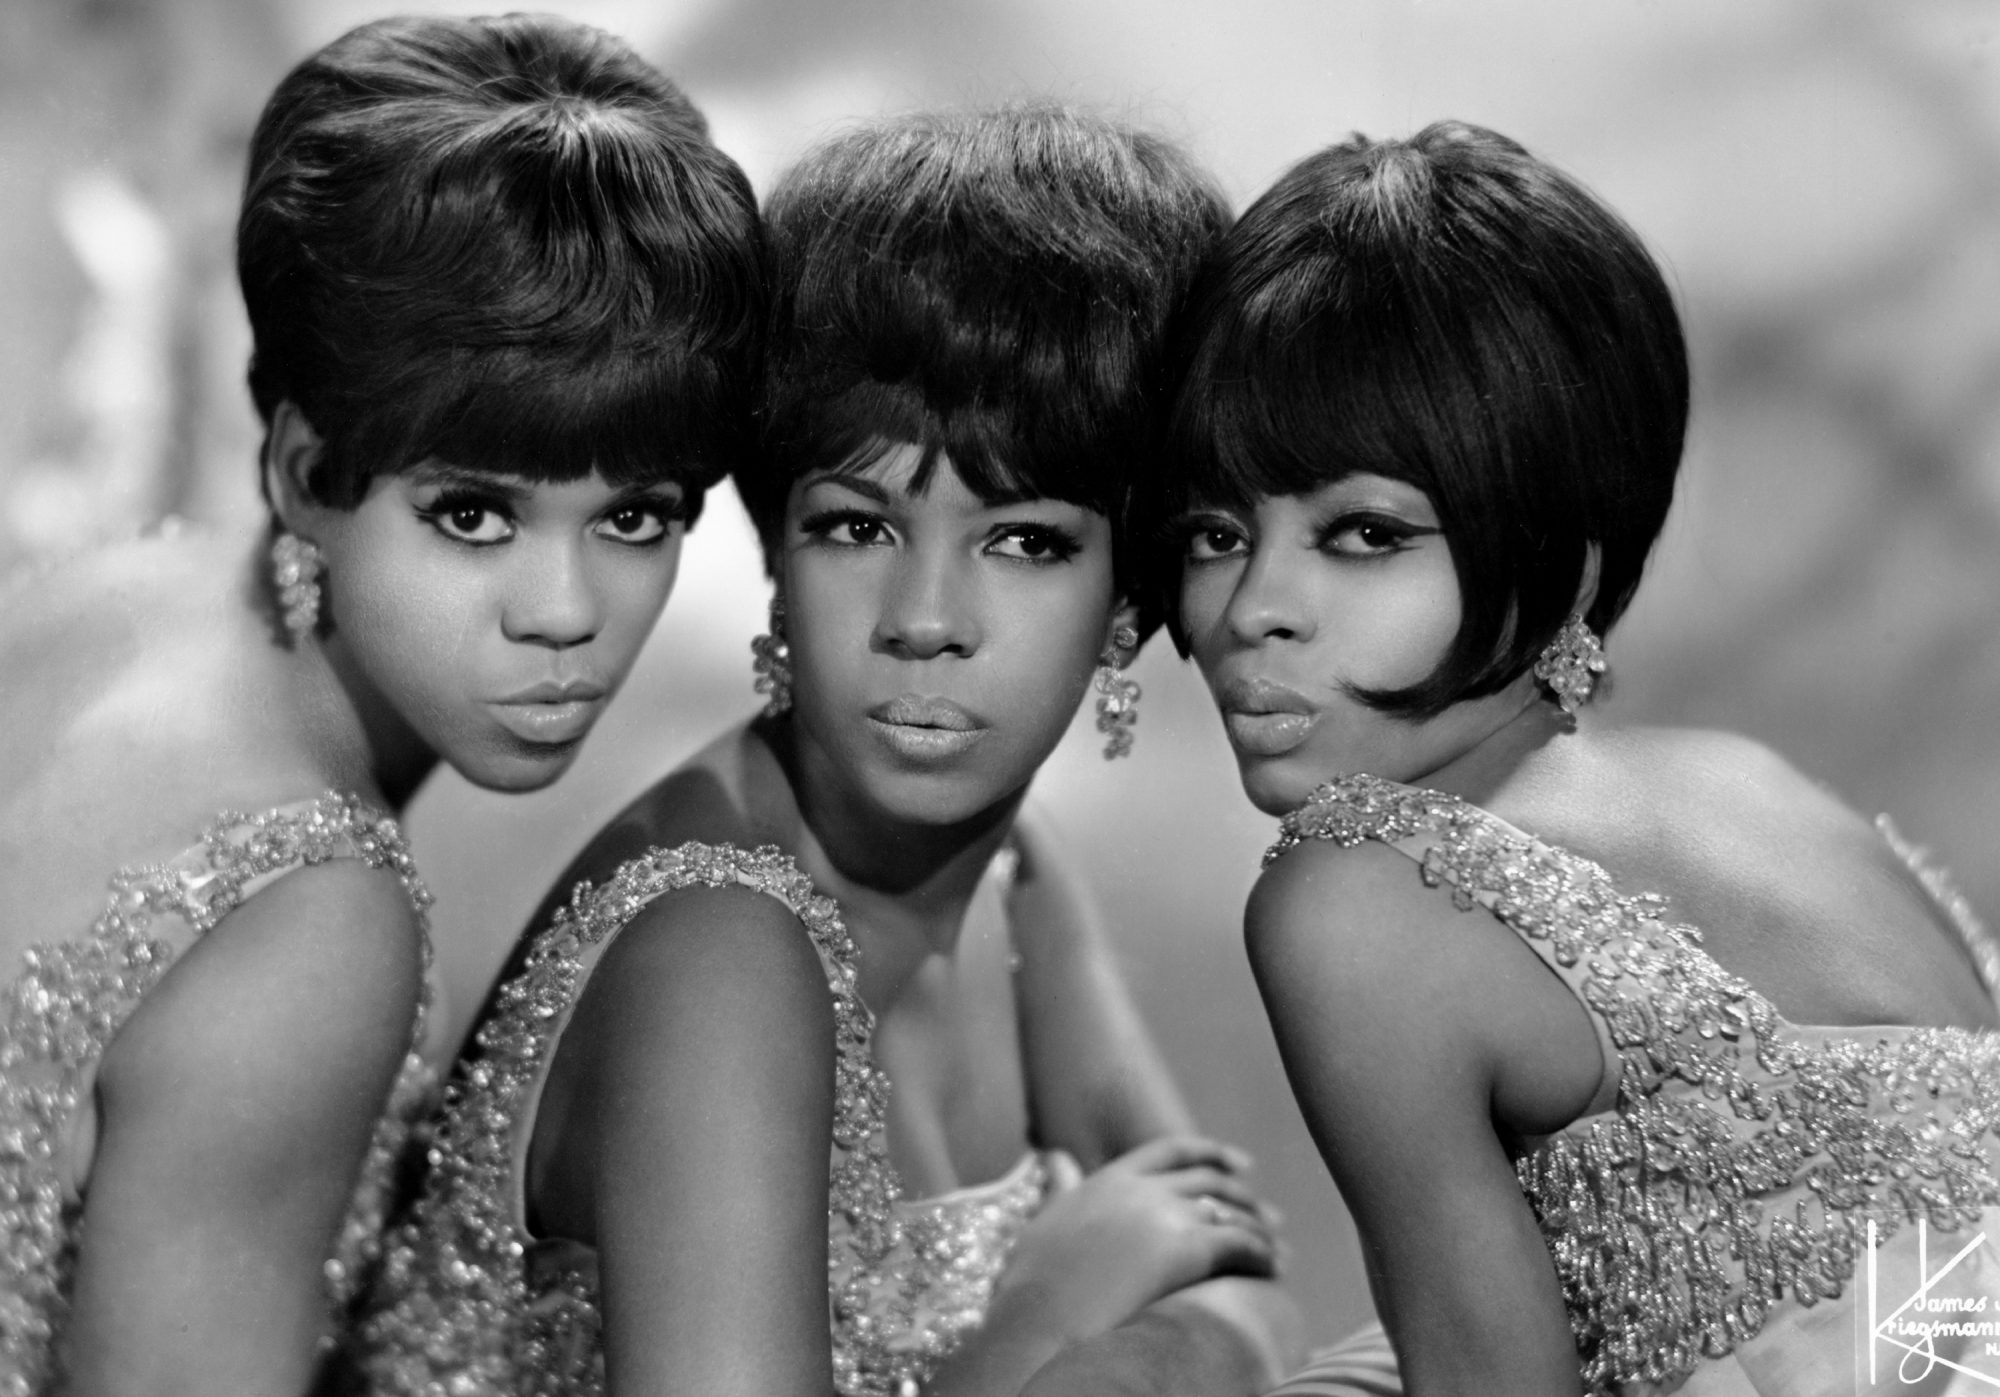 ALL NATURAL: How Exactly Did Wigs Become Such a Staple for Black Women?